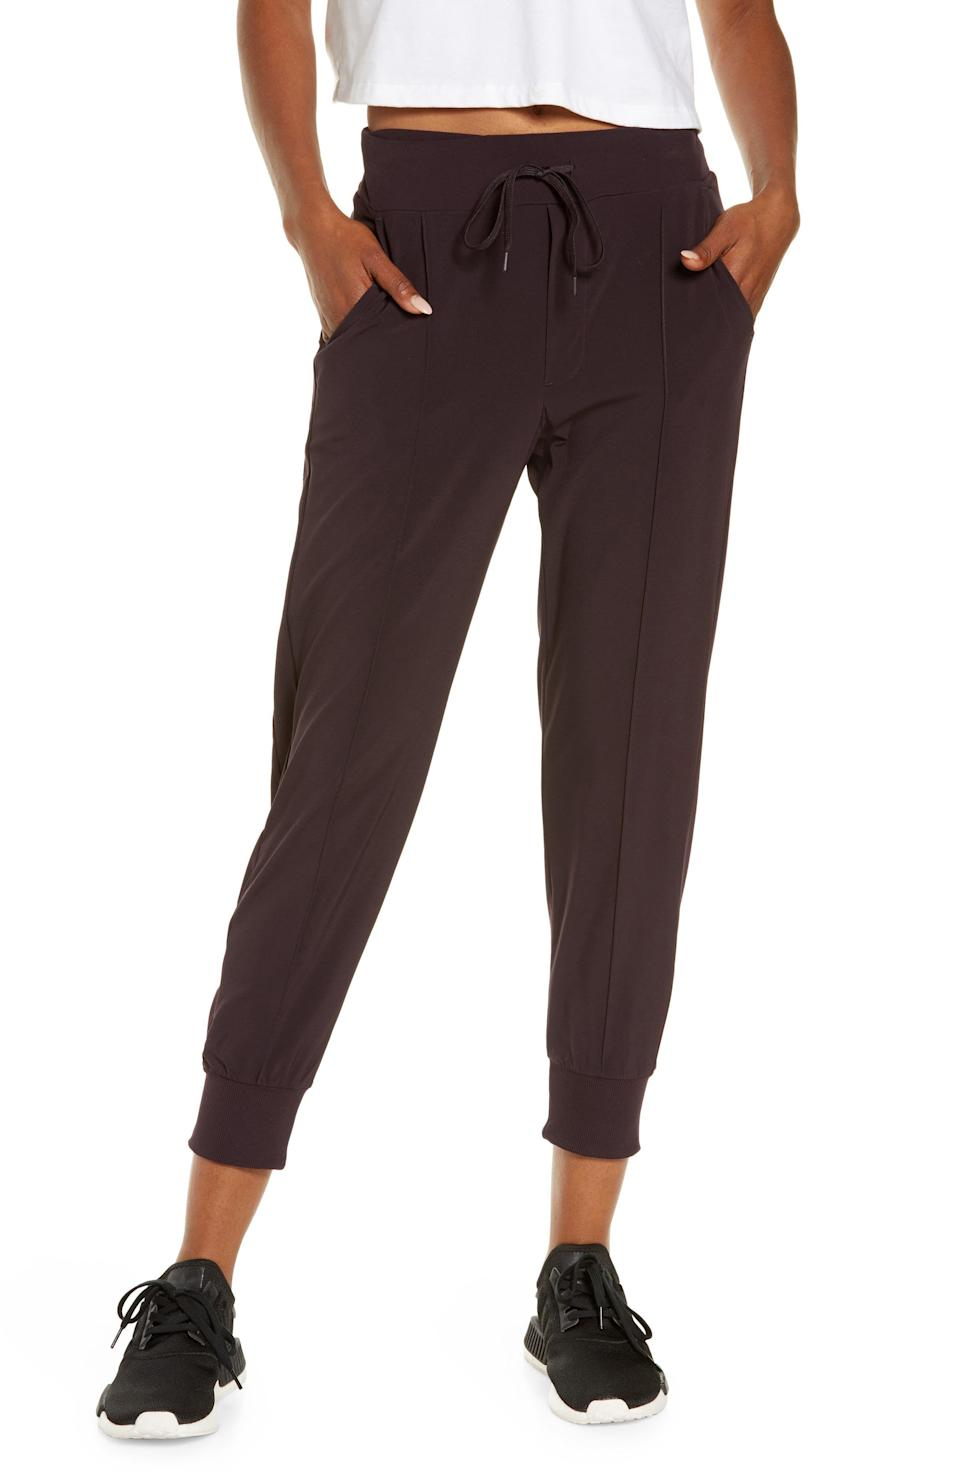 """<p><strong>ZELLA</strong></p><p>nordstrom.com</p><p><strong>$75.00</strong></p><p><a href=""""https://go.redirectingat.com?id=74968X1596630&url=https%3A%2F%2Fwww.nordstrom.com%2Fs%2Fzella-getaway-pocket-lightweight-woven-joggers%2F5675210&sref=https%3A%2F%2Fwww.womenshealthmag.com%2Ffitness%2Fg36719192%2Fbest-joggers-for-women%2F"""" rel=""""nofollow noopener"""" target=""""_blank"""" data-ylk=""""slk:Shop Now"""" class=""""link rapid-noclick-resp"""">Shop Now</a></p><p>For a good stretch sesh, you most definitely need a jogger that allows for all the bends, twists, and expansion. This lightweight pair is the top pick of Kelsey Decker, instructor XPRO for <a href=""""https://www.stretchlab.com/go"""" rel=""""nofollow noopener"""" target=""""_blank"""" data-ylk=""""slk:StretchLab GO"""" class=""""link rapid-noclick-resp"""">StretchLab GO</a>. """"As a stretch instructor, these pants are free-moving to allow me the elasticity and range of motion I need while performing a stretching exercise,"""" she says. """"As we stretch, our bodies need athletic pants to move with us to reach our flexibility goals while also staying fully covered.""""</p>"""